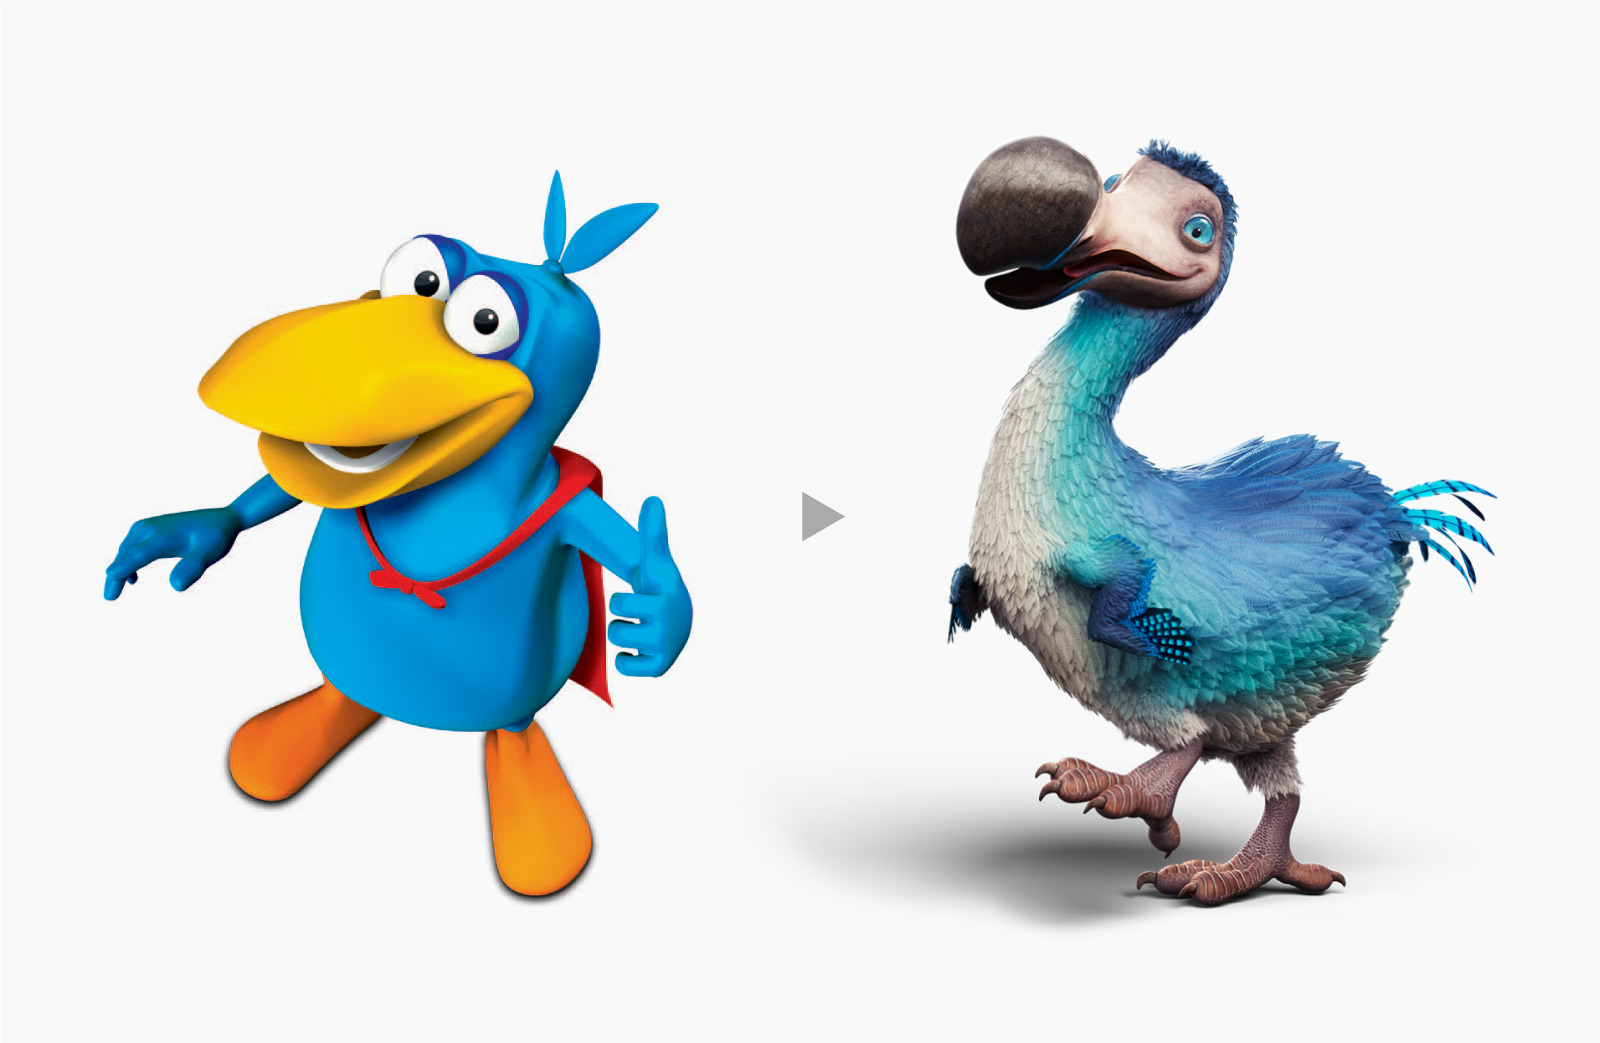 Dodo bird mascot before and after